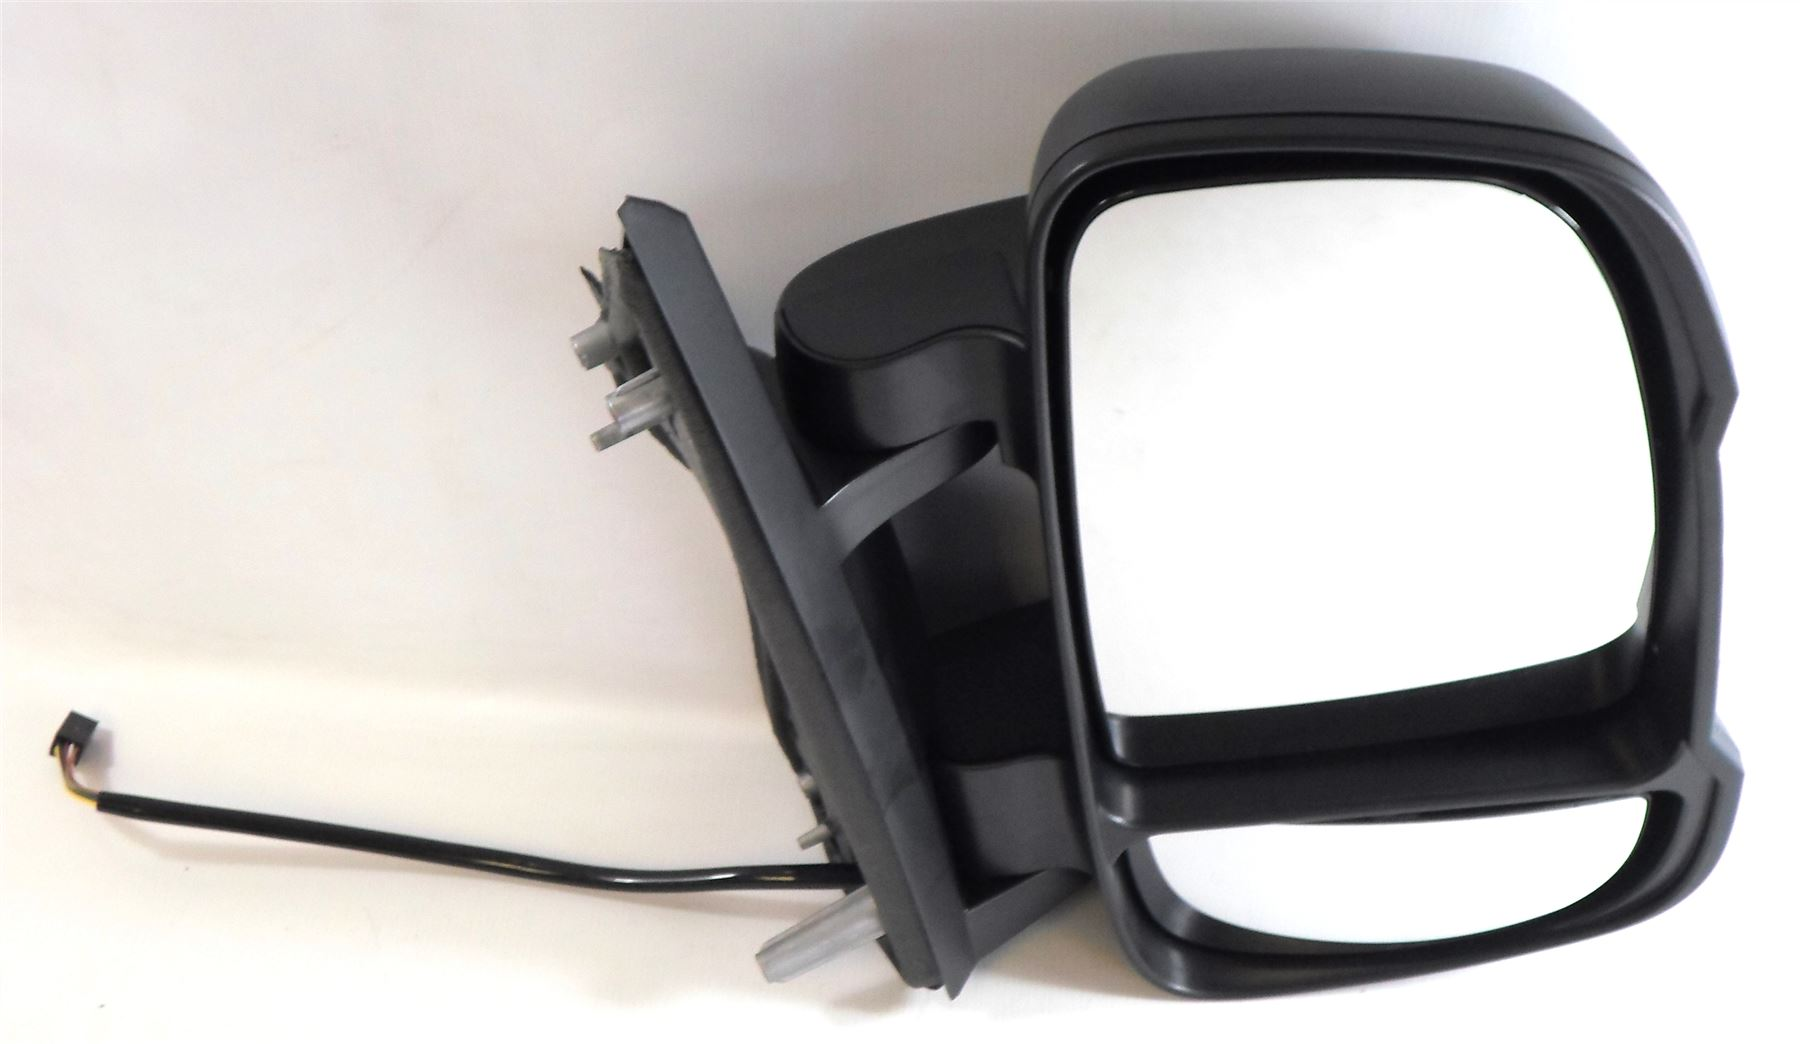 Peugeot Boxer 2006-9/2014 Short Arm Wing Mirror Electric 5w Bulb Drivers Side